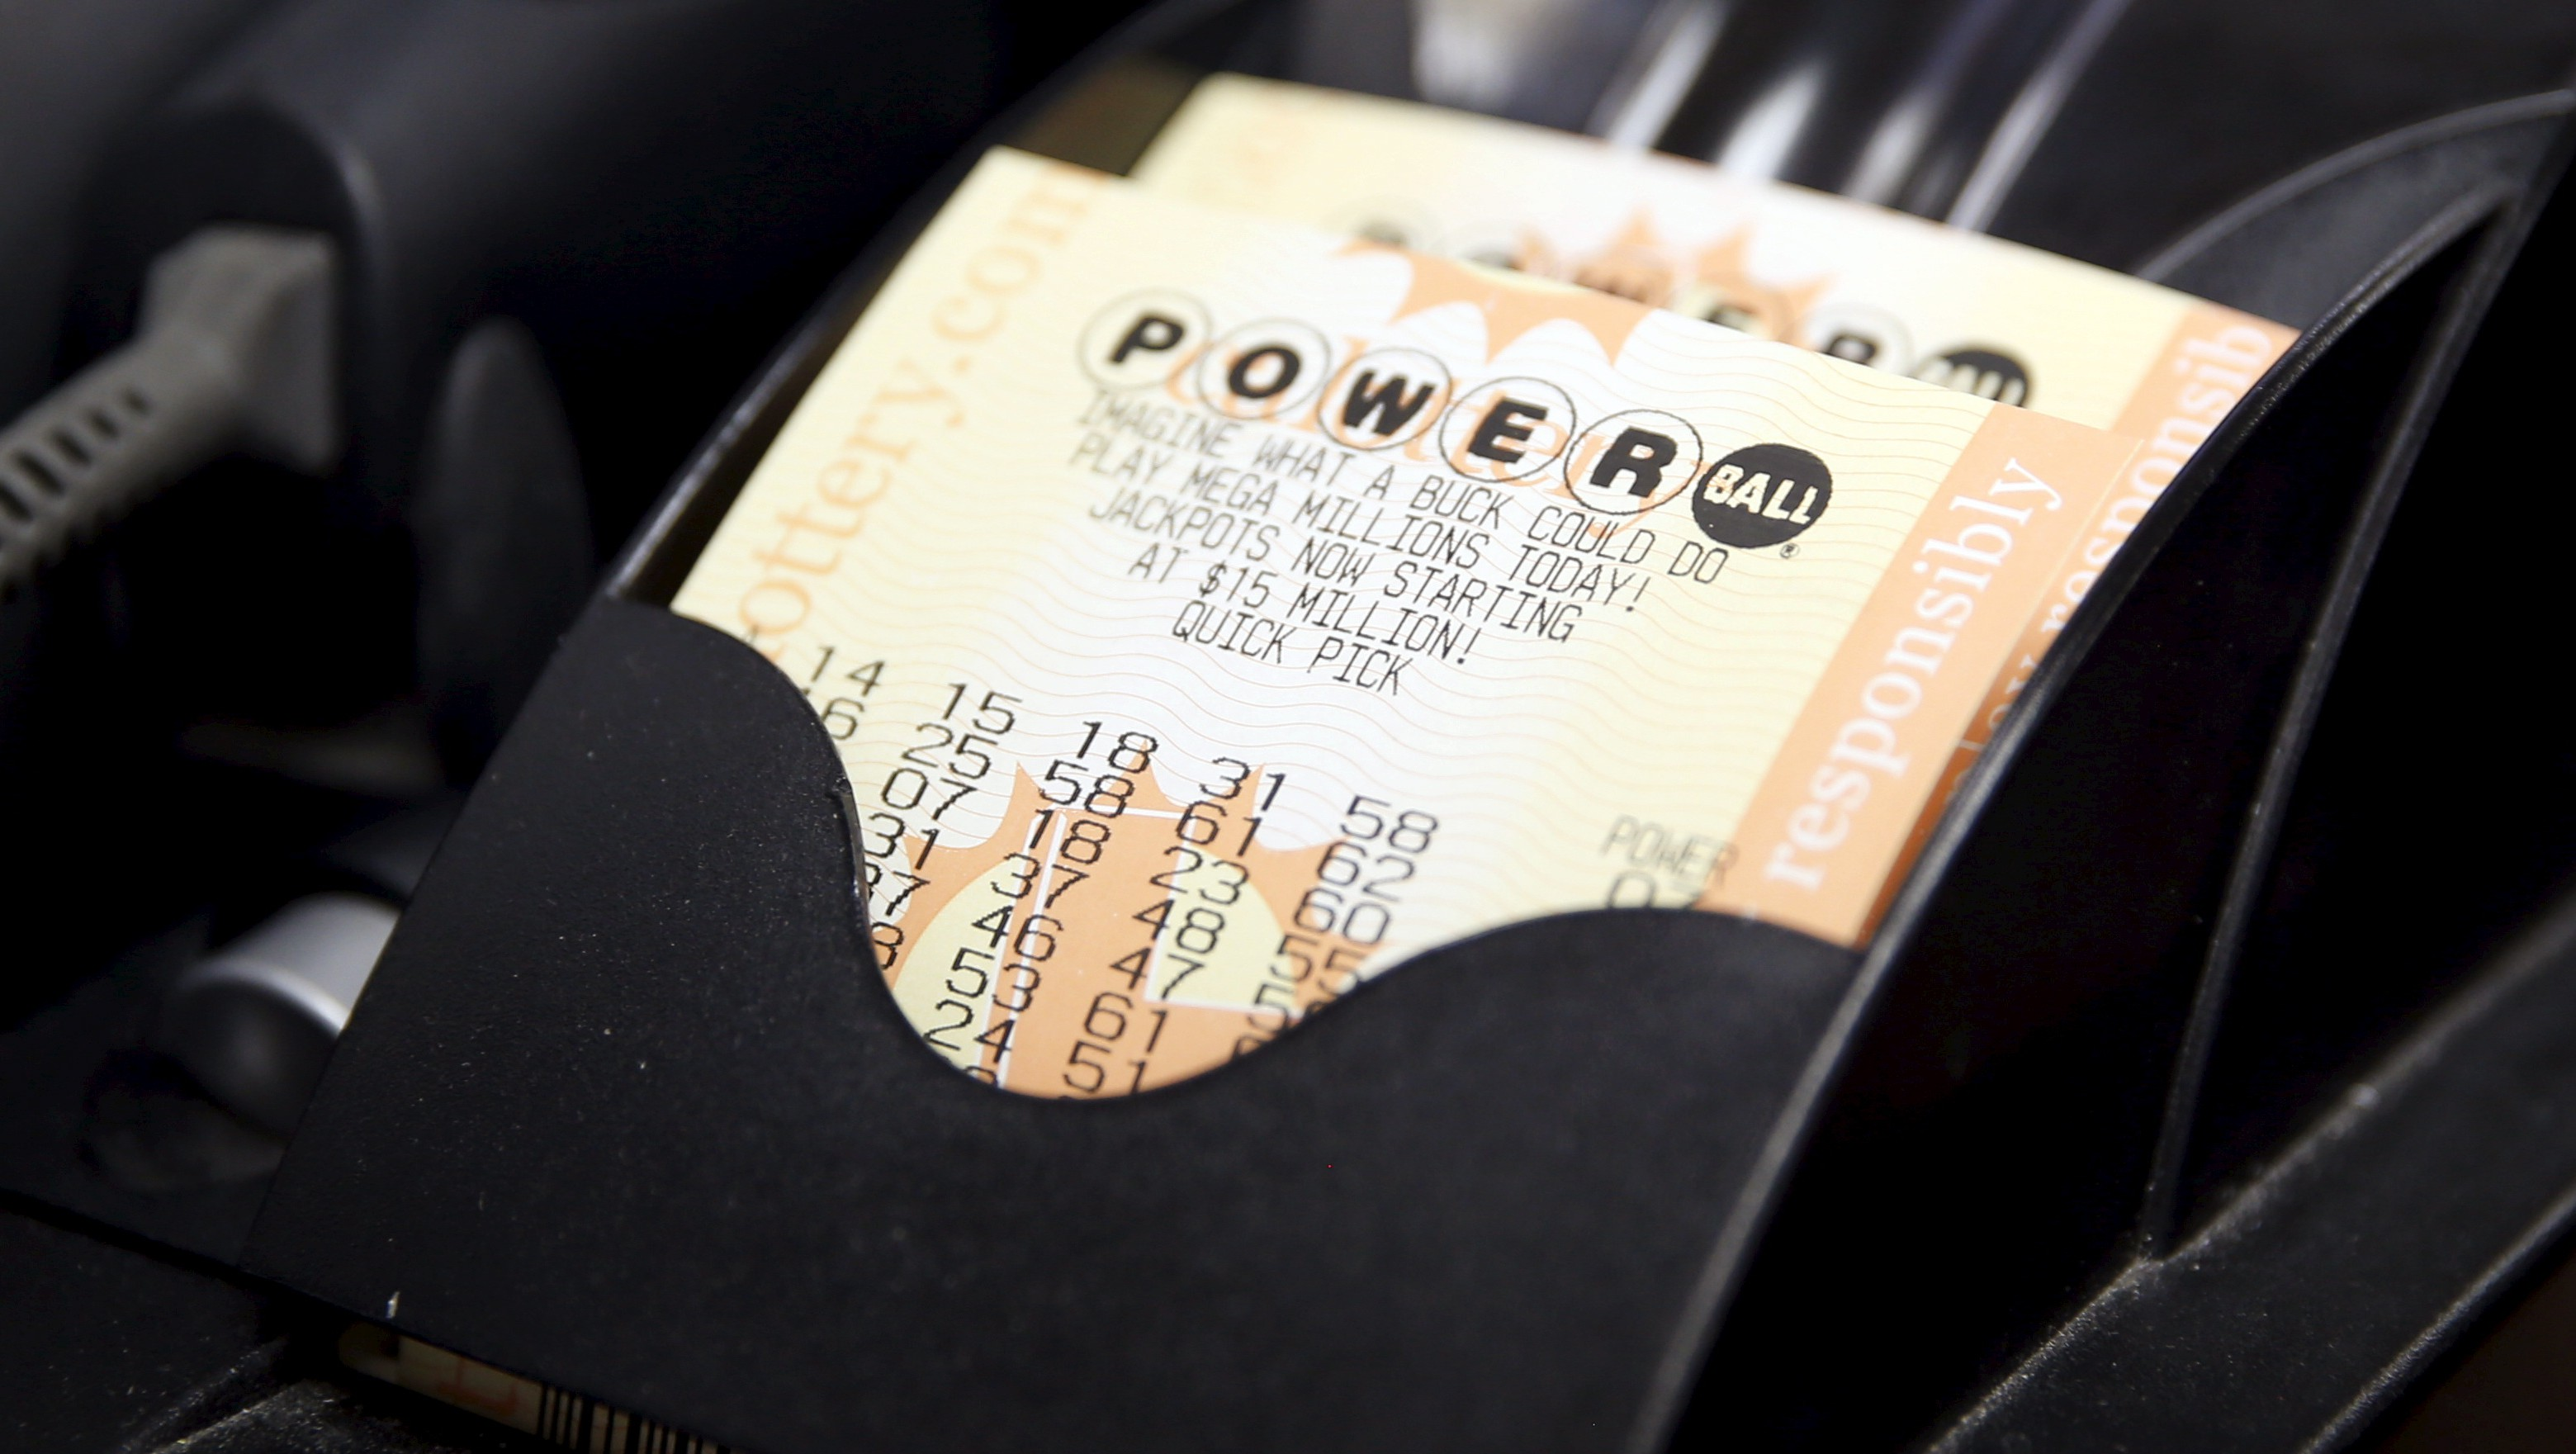 Powerball lottery tickets are seen at Bluebird Liquor in Hawthorne, Los Angeles